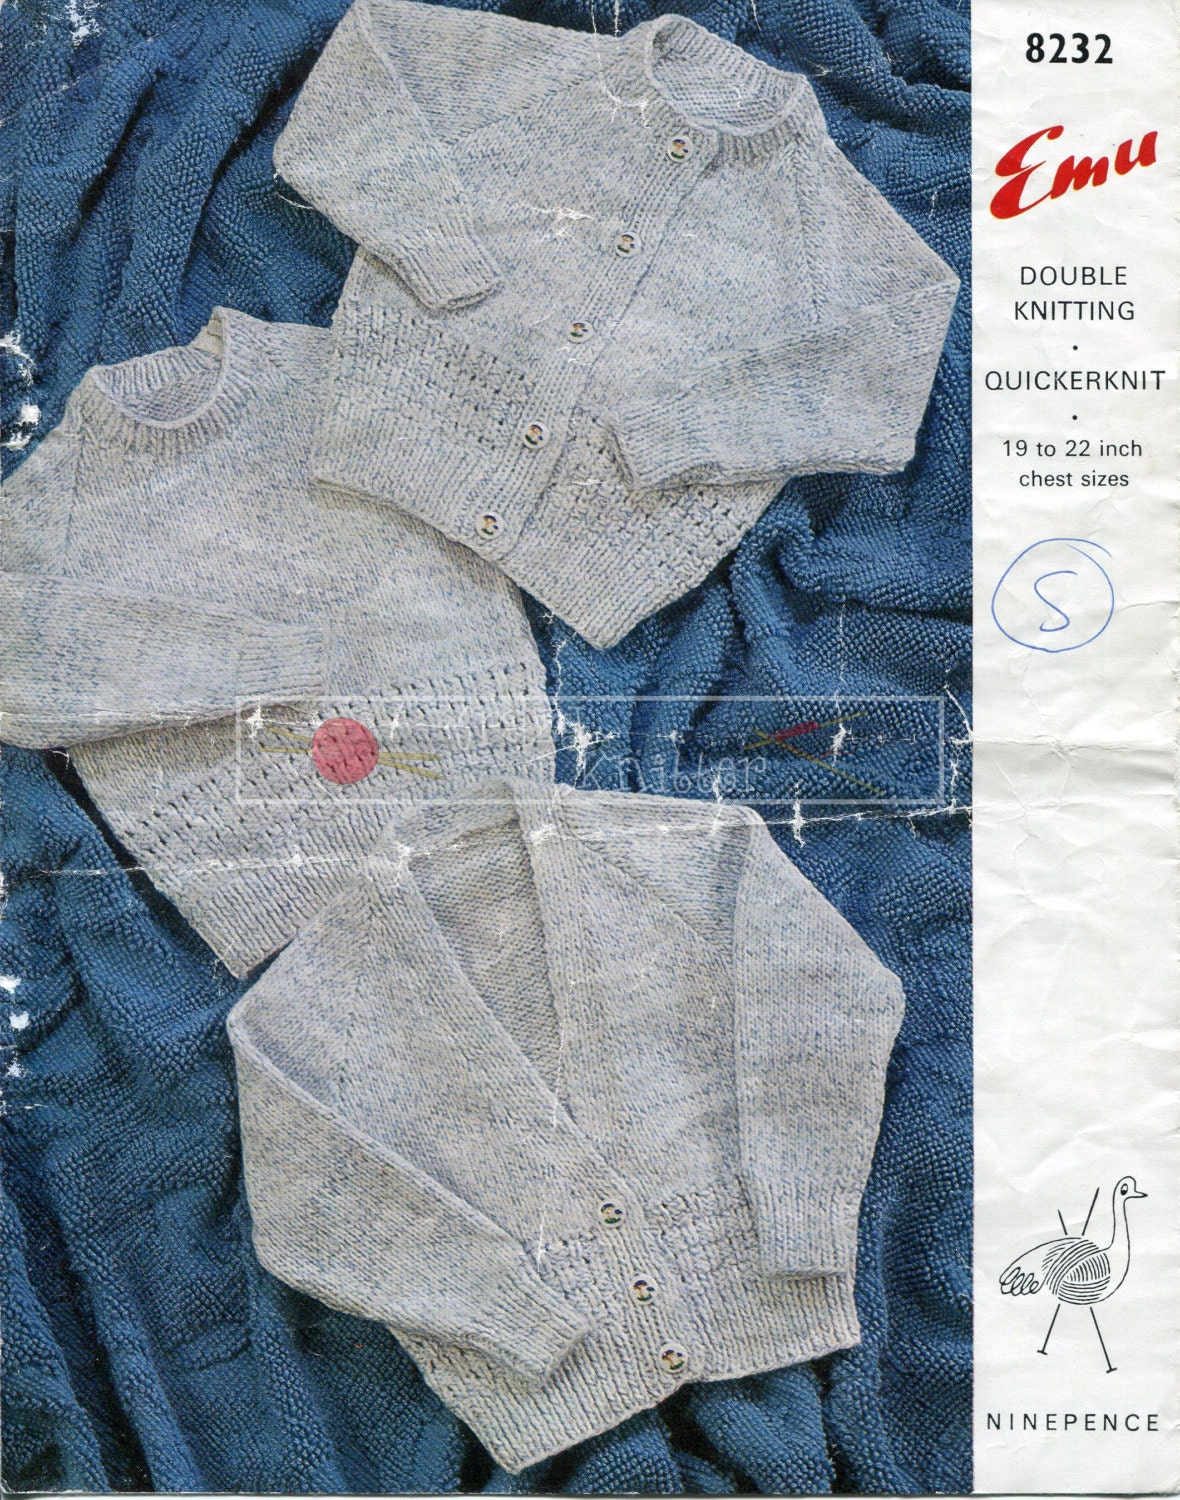 Baby Jumper and Cardigans Knitting Pattern Emu 8232 DK 1922ins Knitting Pattern PDF instant download